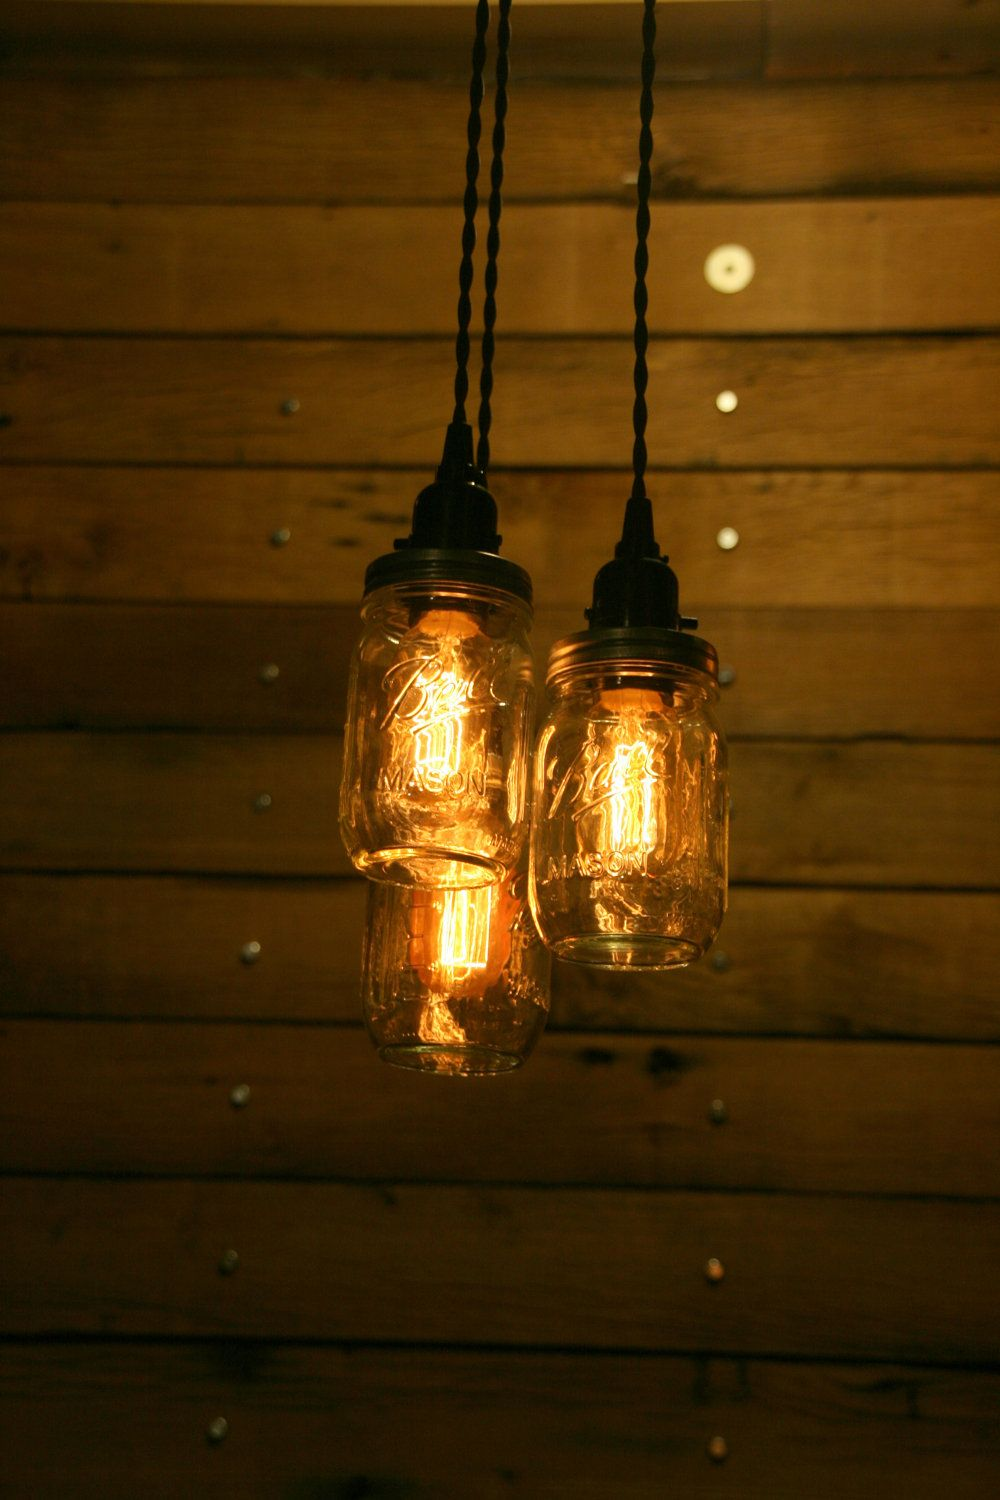 3 jar pendant light mason jar chandelier by industrialrewind 3 jar pendant light mason jar chandelier by industrialrewind 10900 arubaitofo Choice Image